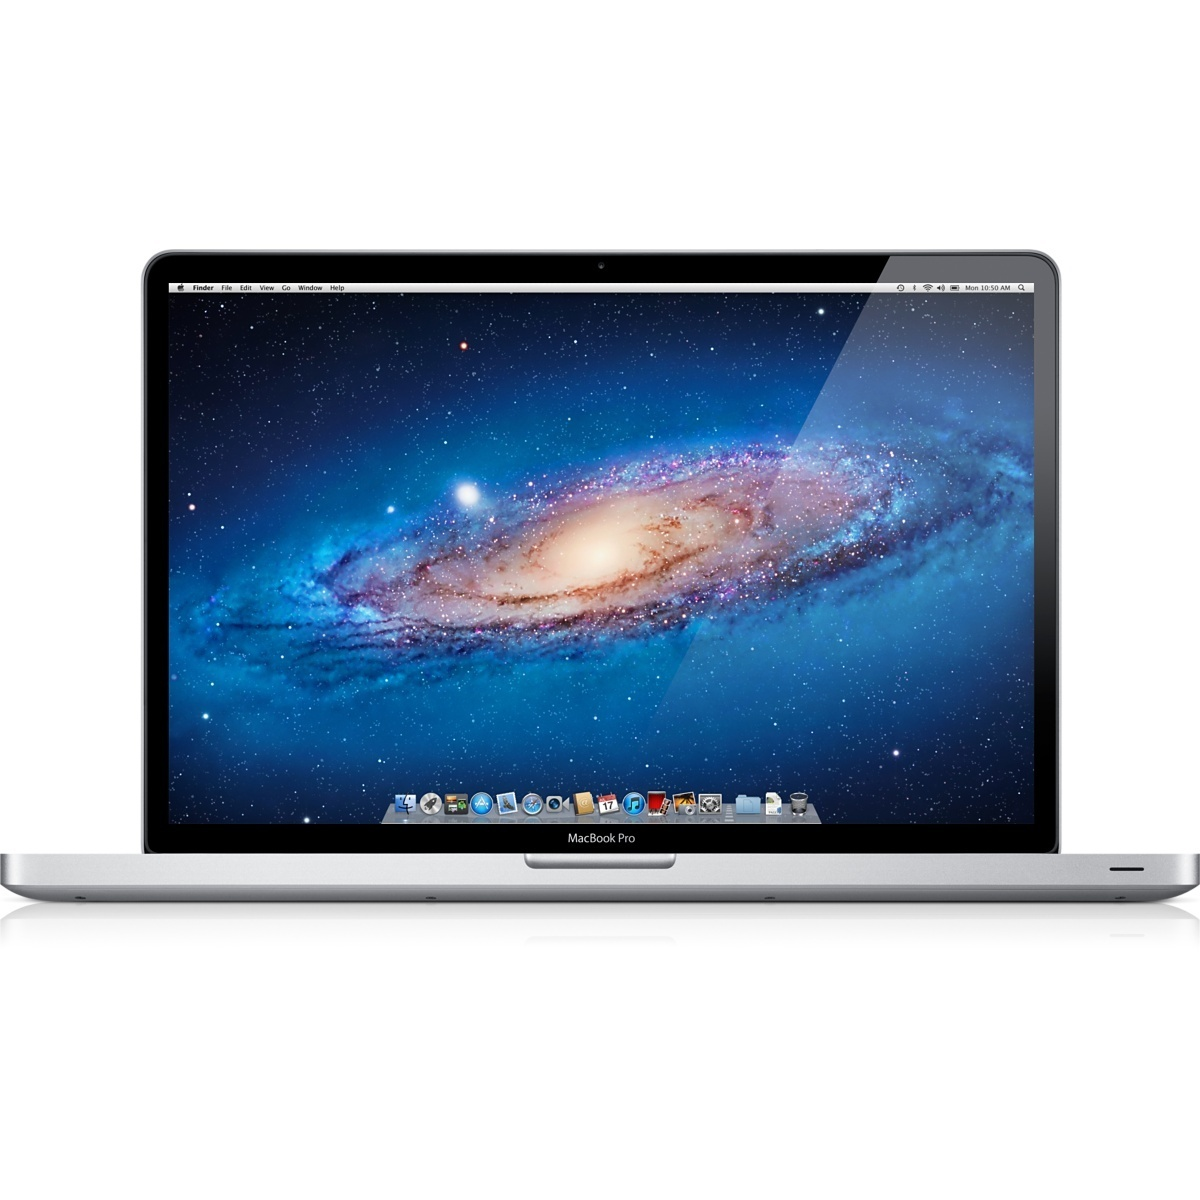 mac laptops - photo #15